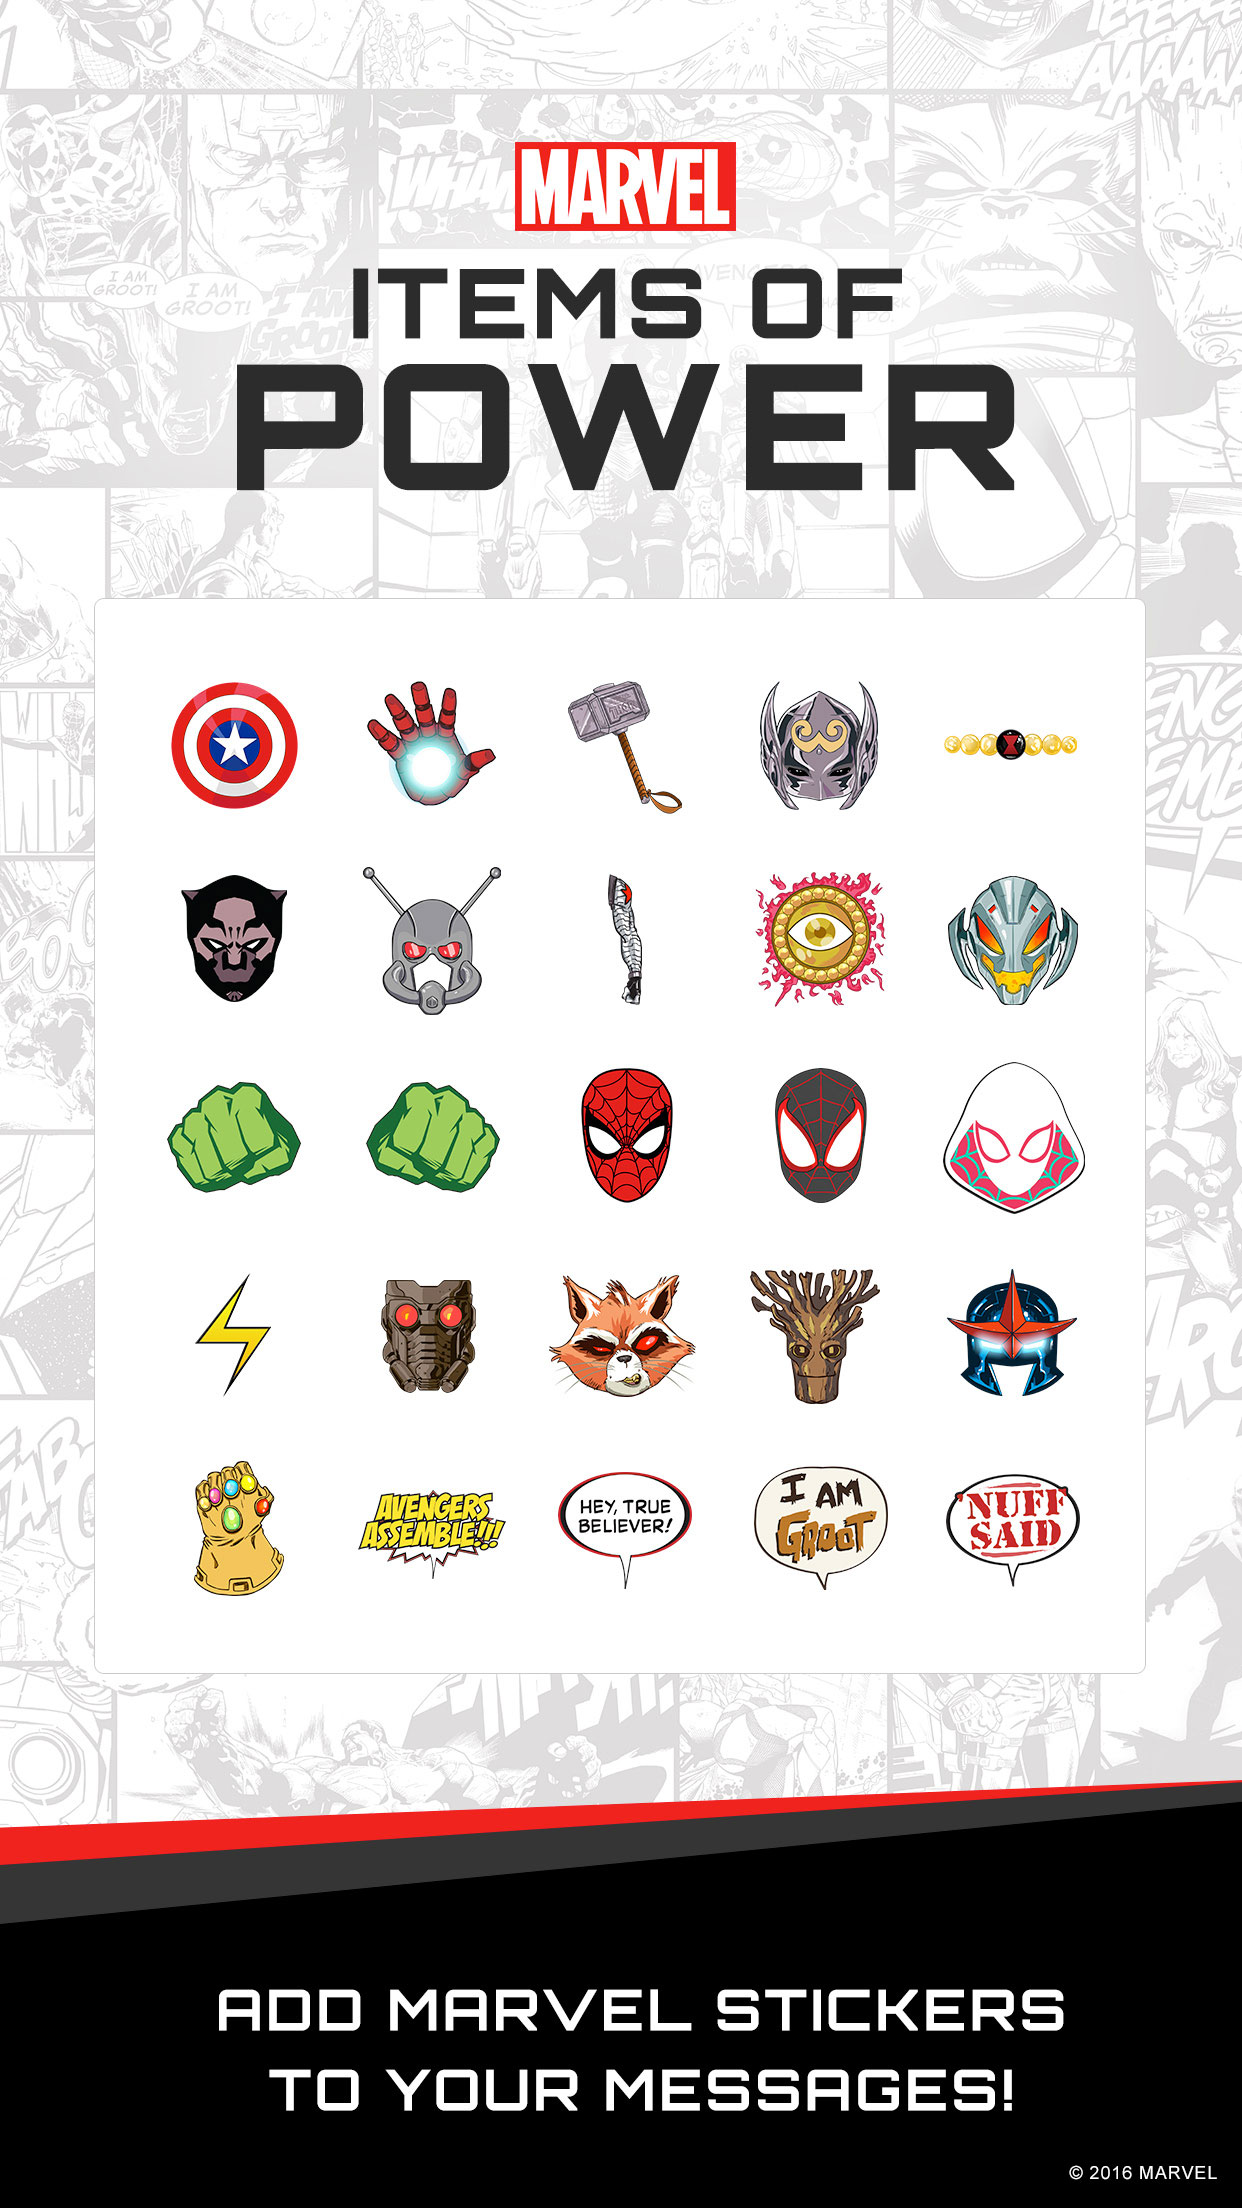 Disney, Marvel, and Star Wars Stickers Come to iOS 10